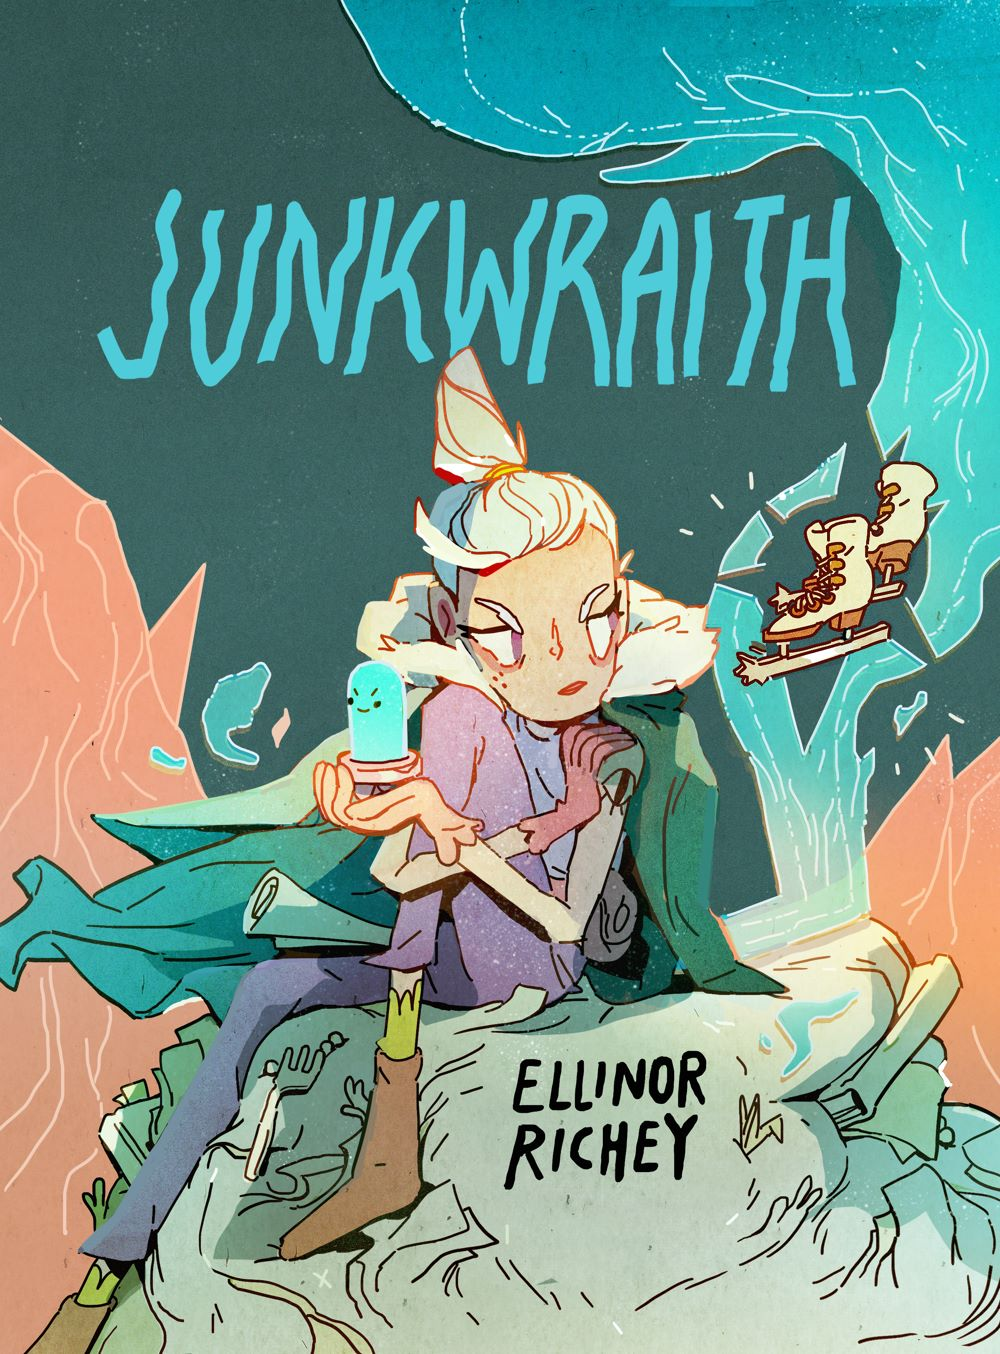 Junkwraith-COVER-hi-res IDW Publishing August 2021 Solicitations